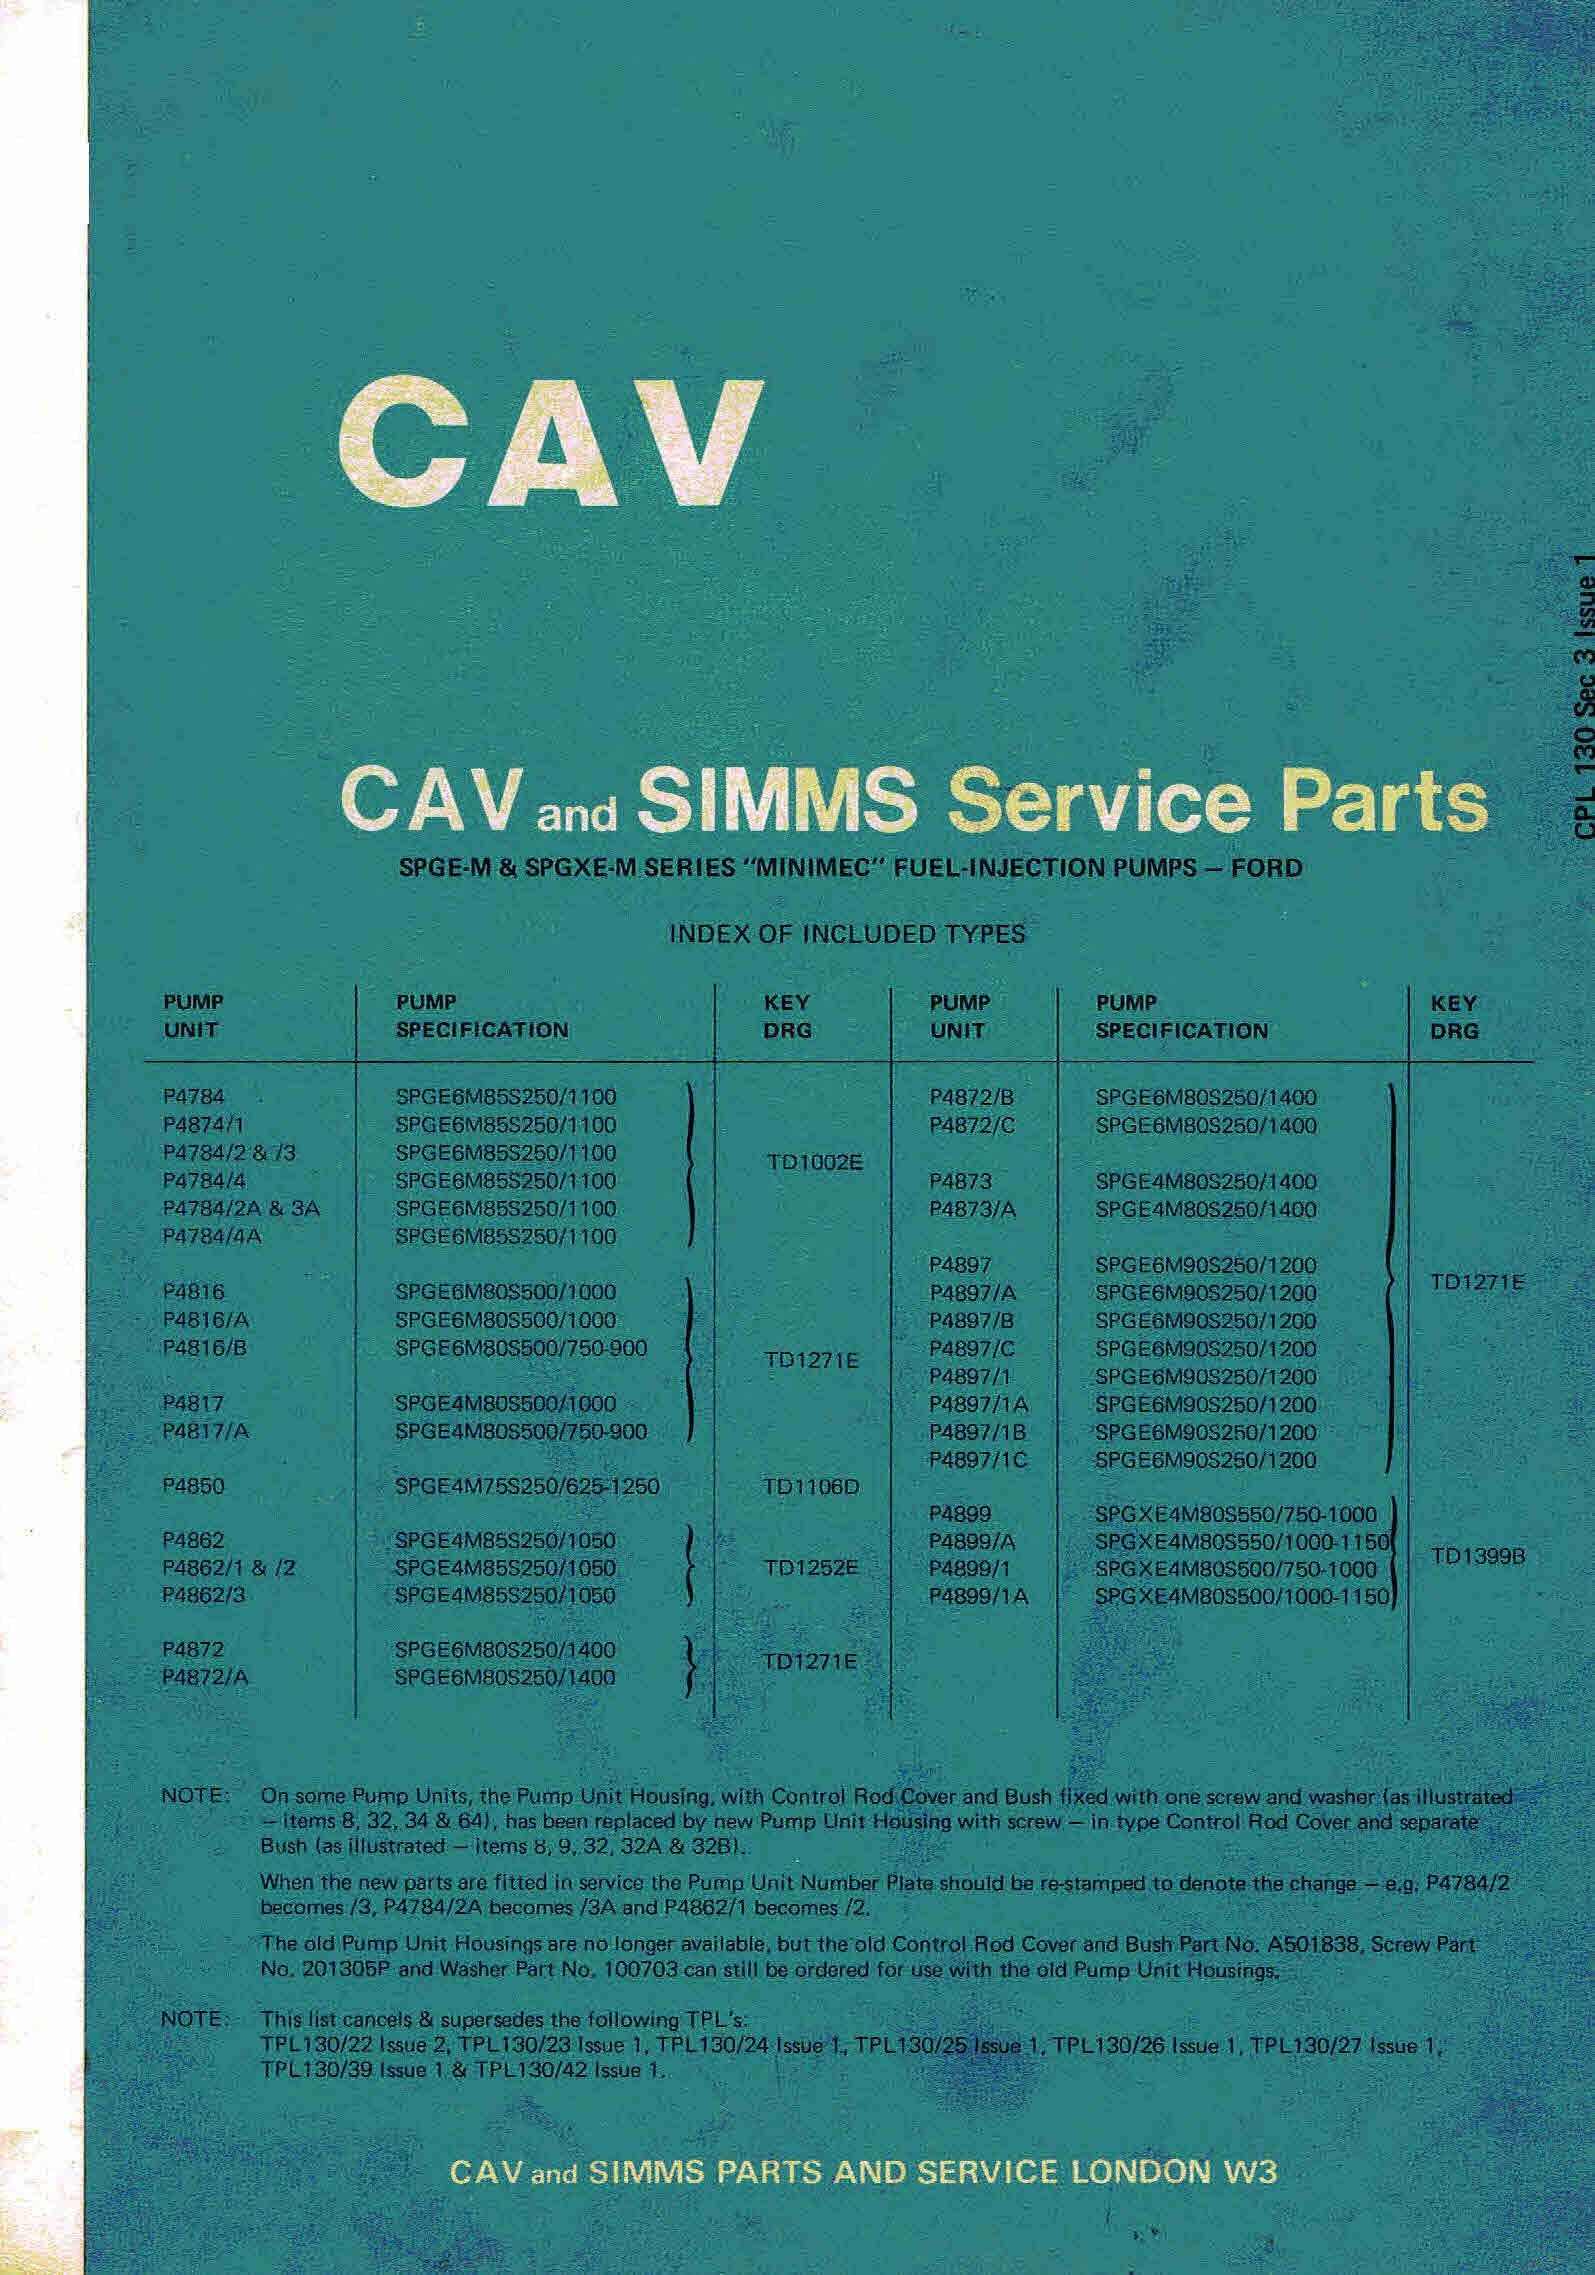 Cav Amp Simms Spge M Spgxe M Inimec Injectorsford Parts Manualcovers Cav Spg6m Fuel Pumpsillustrated Parts Manualevery Nut Ford Parts Nuts And Bolts The Unit